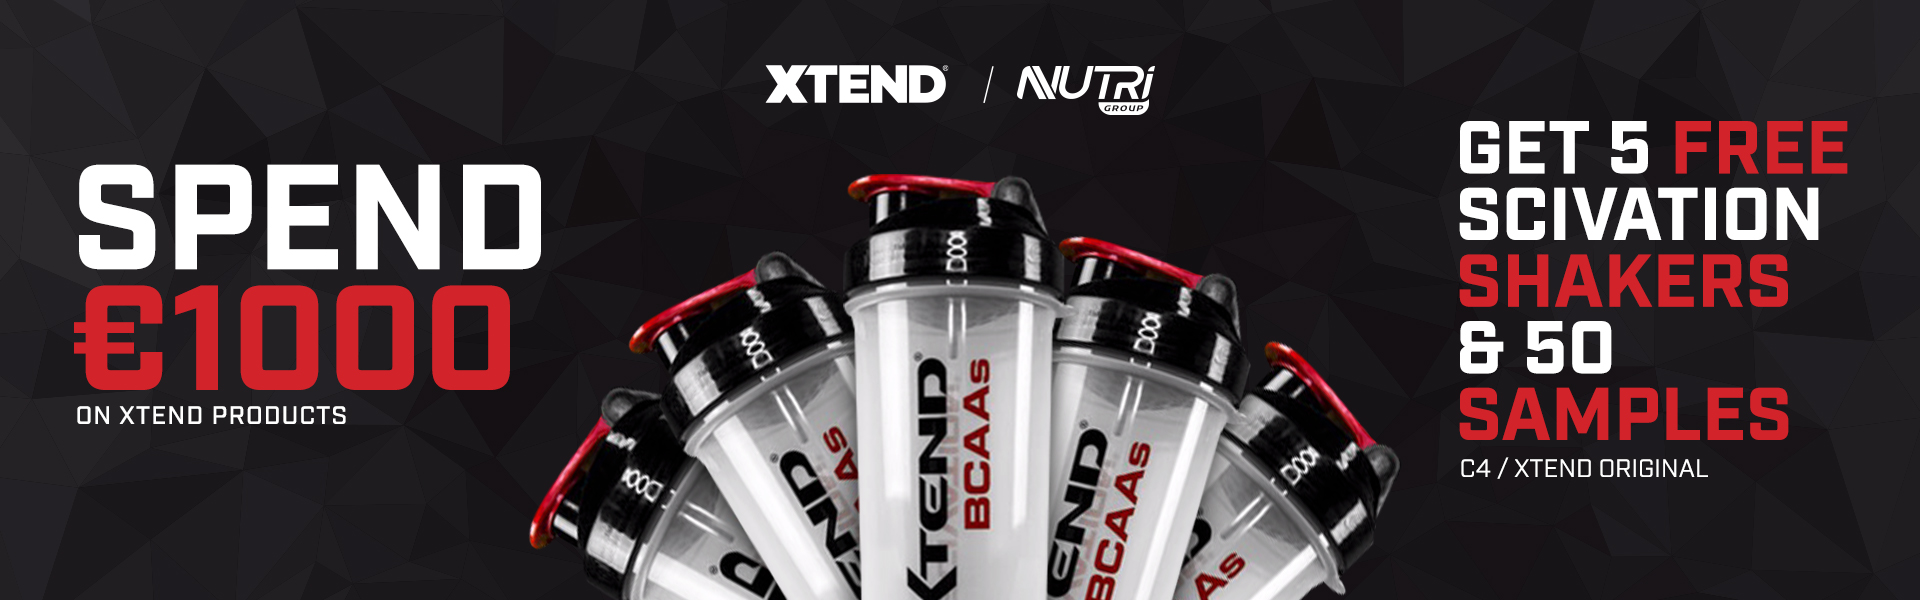 Xtend All Products